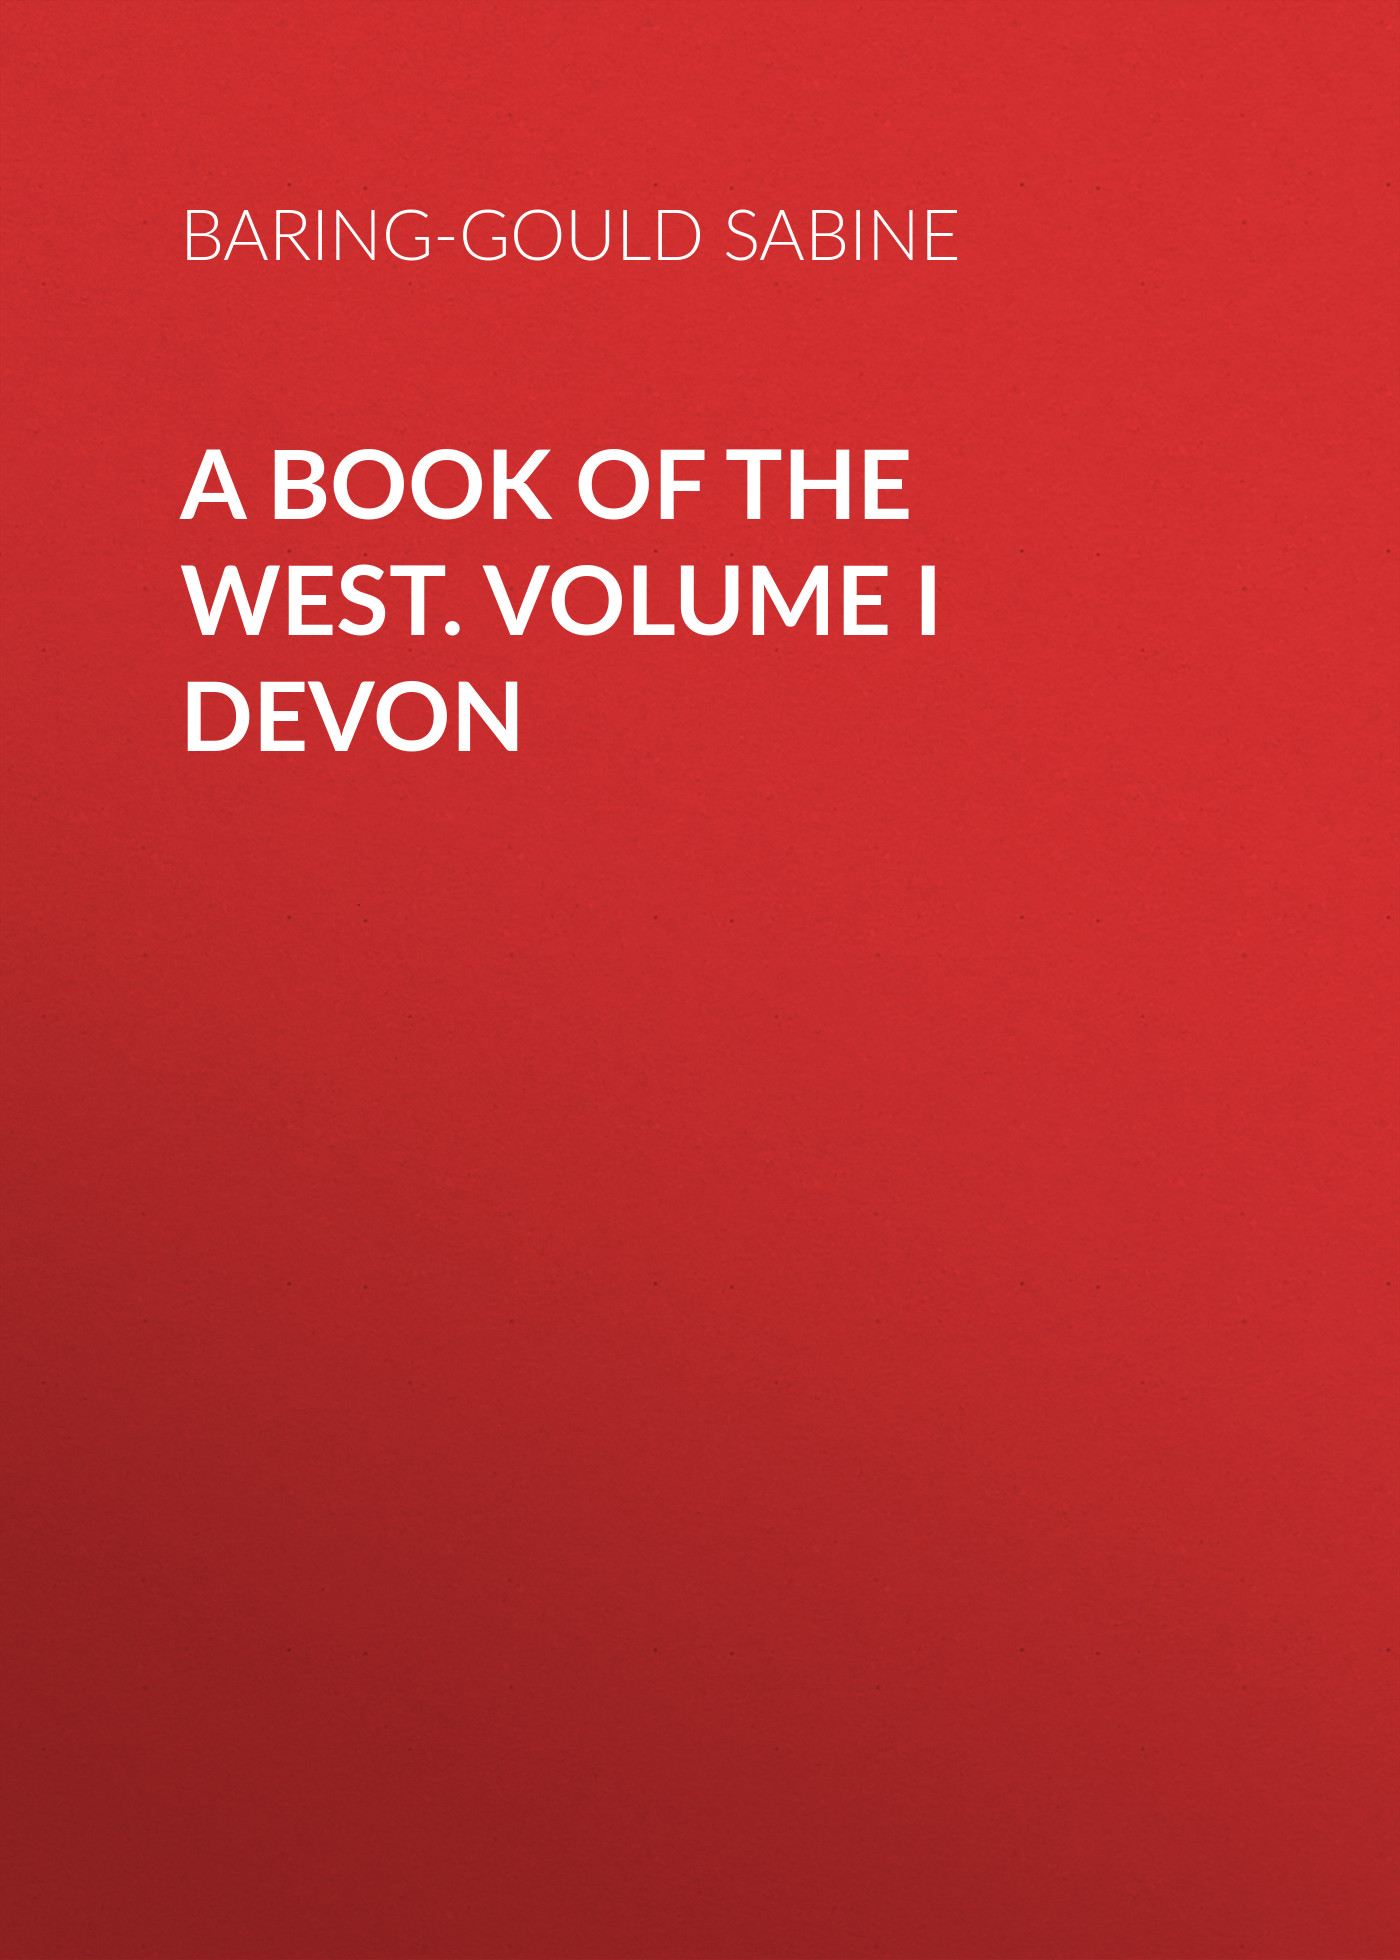 цена Baring-Gould Sabine A Book of the West. Volume I Devon